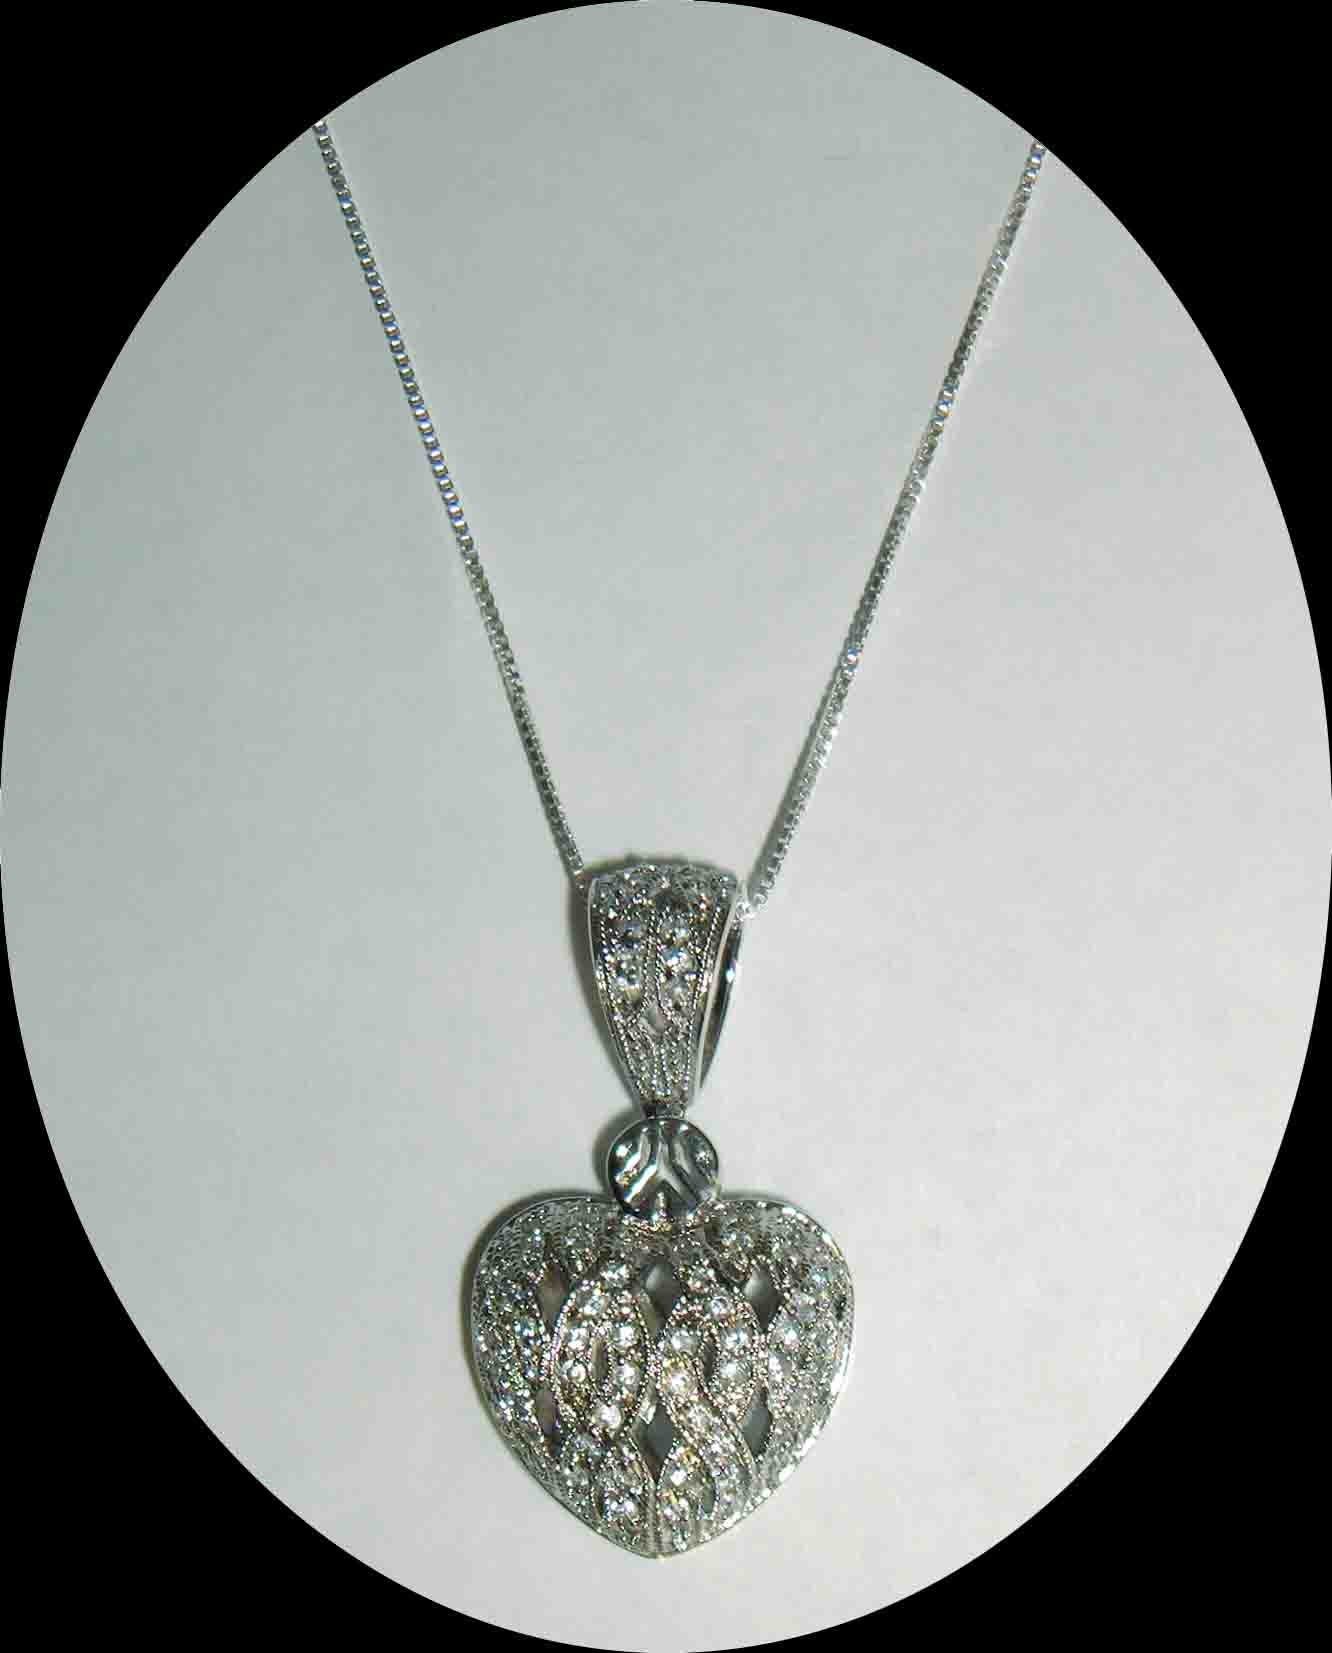 CZ encrusted puffed heart pendant necklace